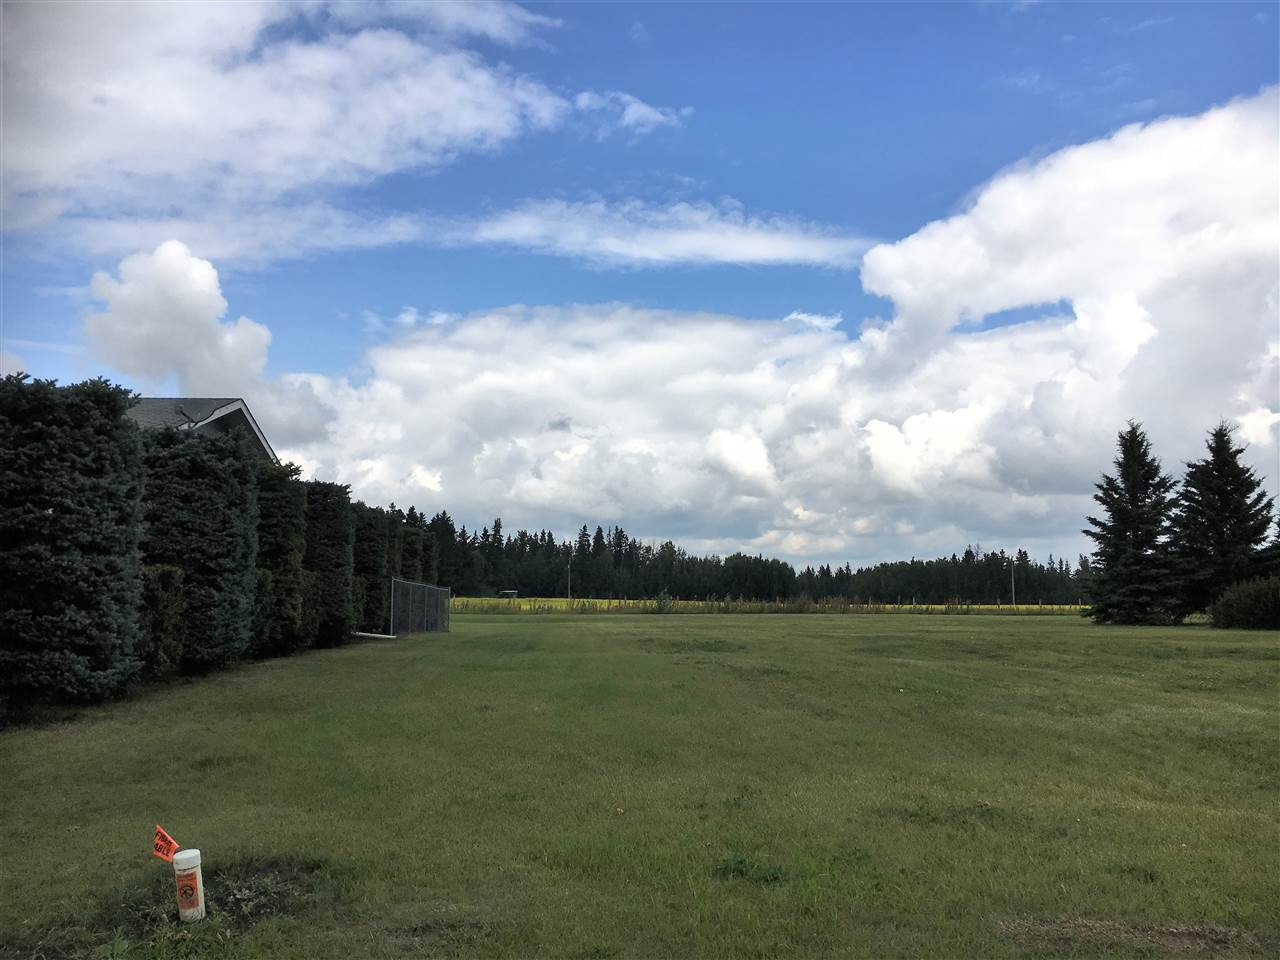 60'x110' lot in newer neighborhood backing green space. Services available at lot line. Thorsby is a great community with many amenities and is an easy commute to Leduc and the airport in 25 minutes. With Costco, the outlet mall and all the shopping in Leduc you'll never need to go further!